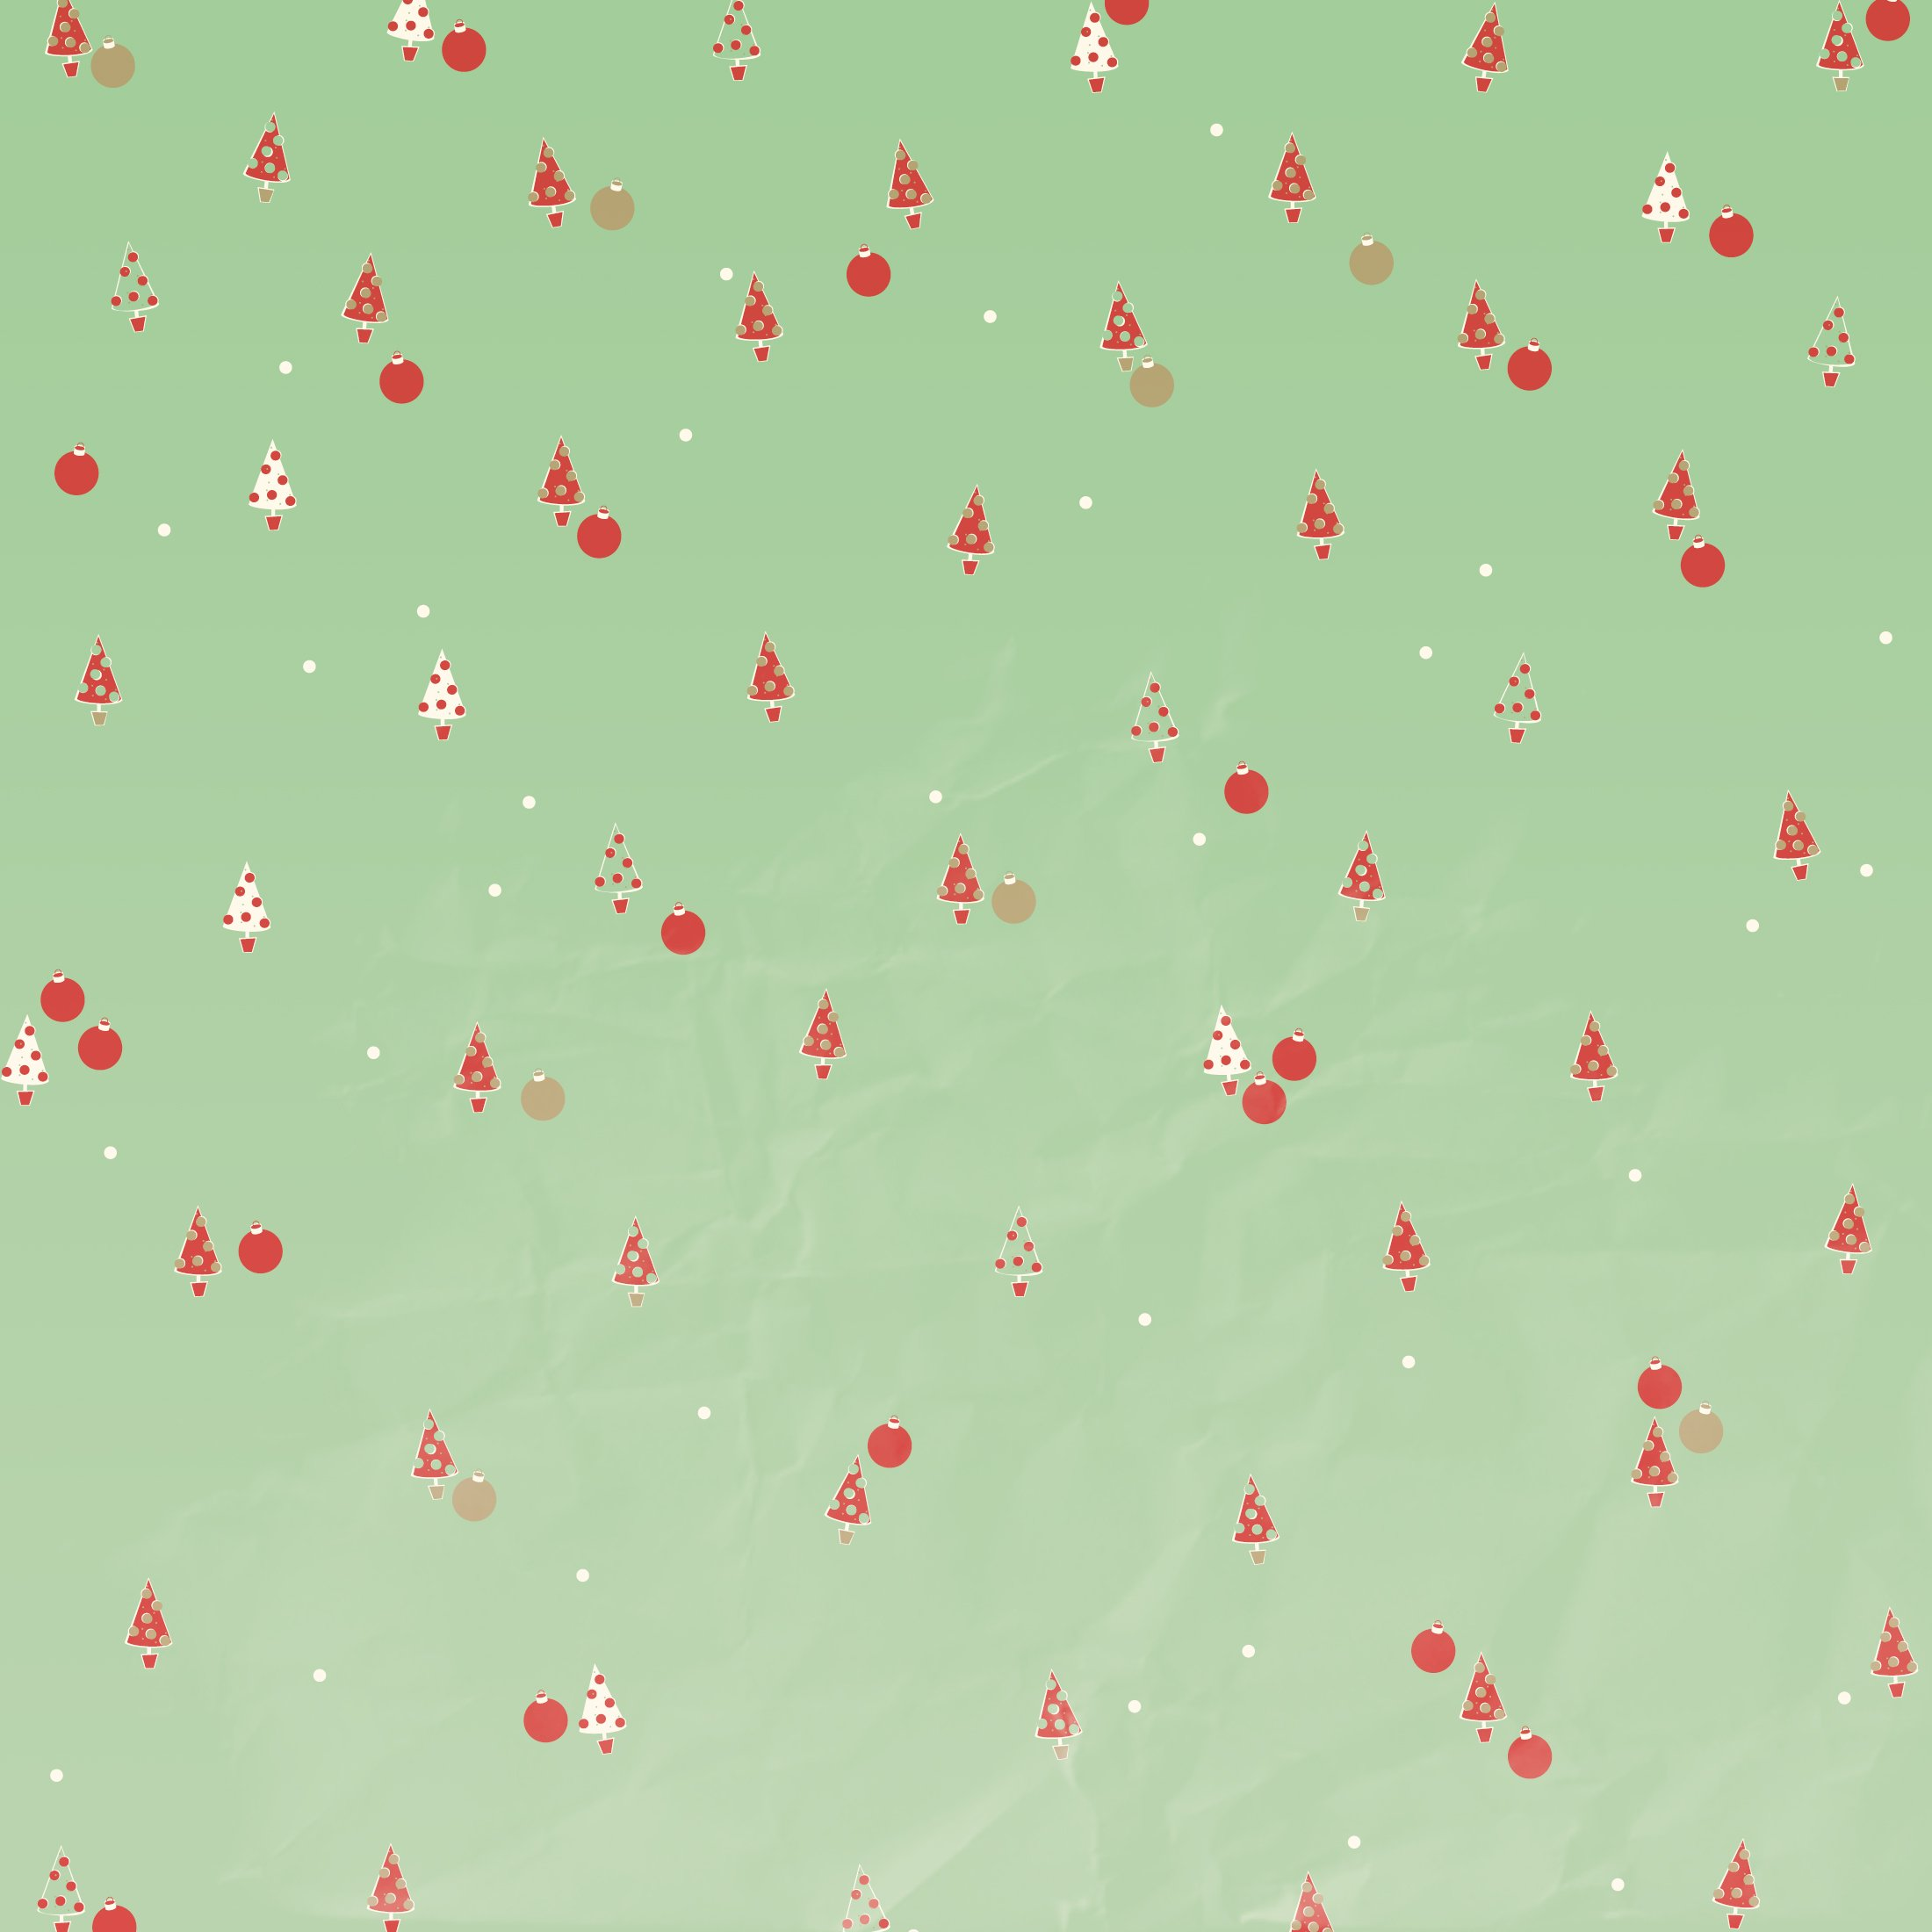 Cute Christmas Backgrounds Tumblr   wwwyuyellowpagesnet 2200x2200